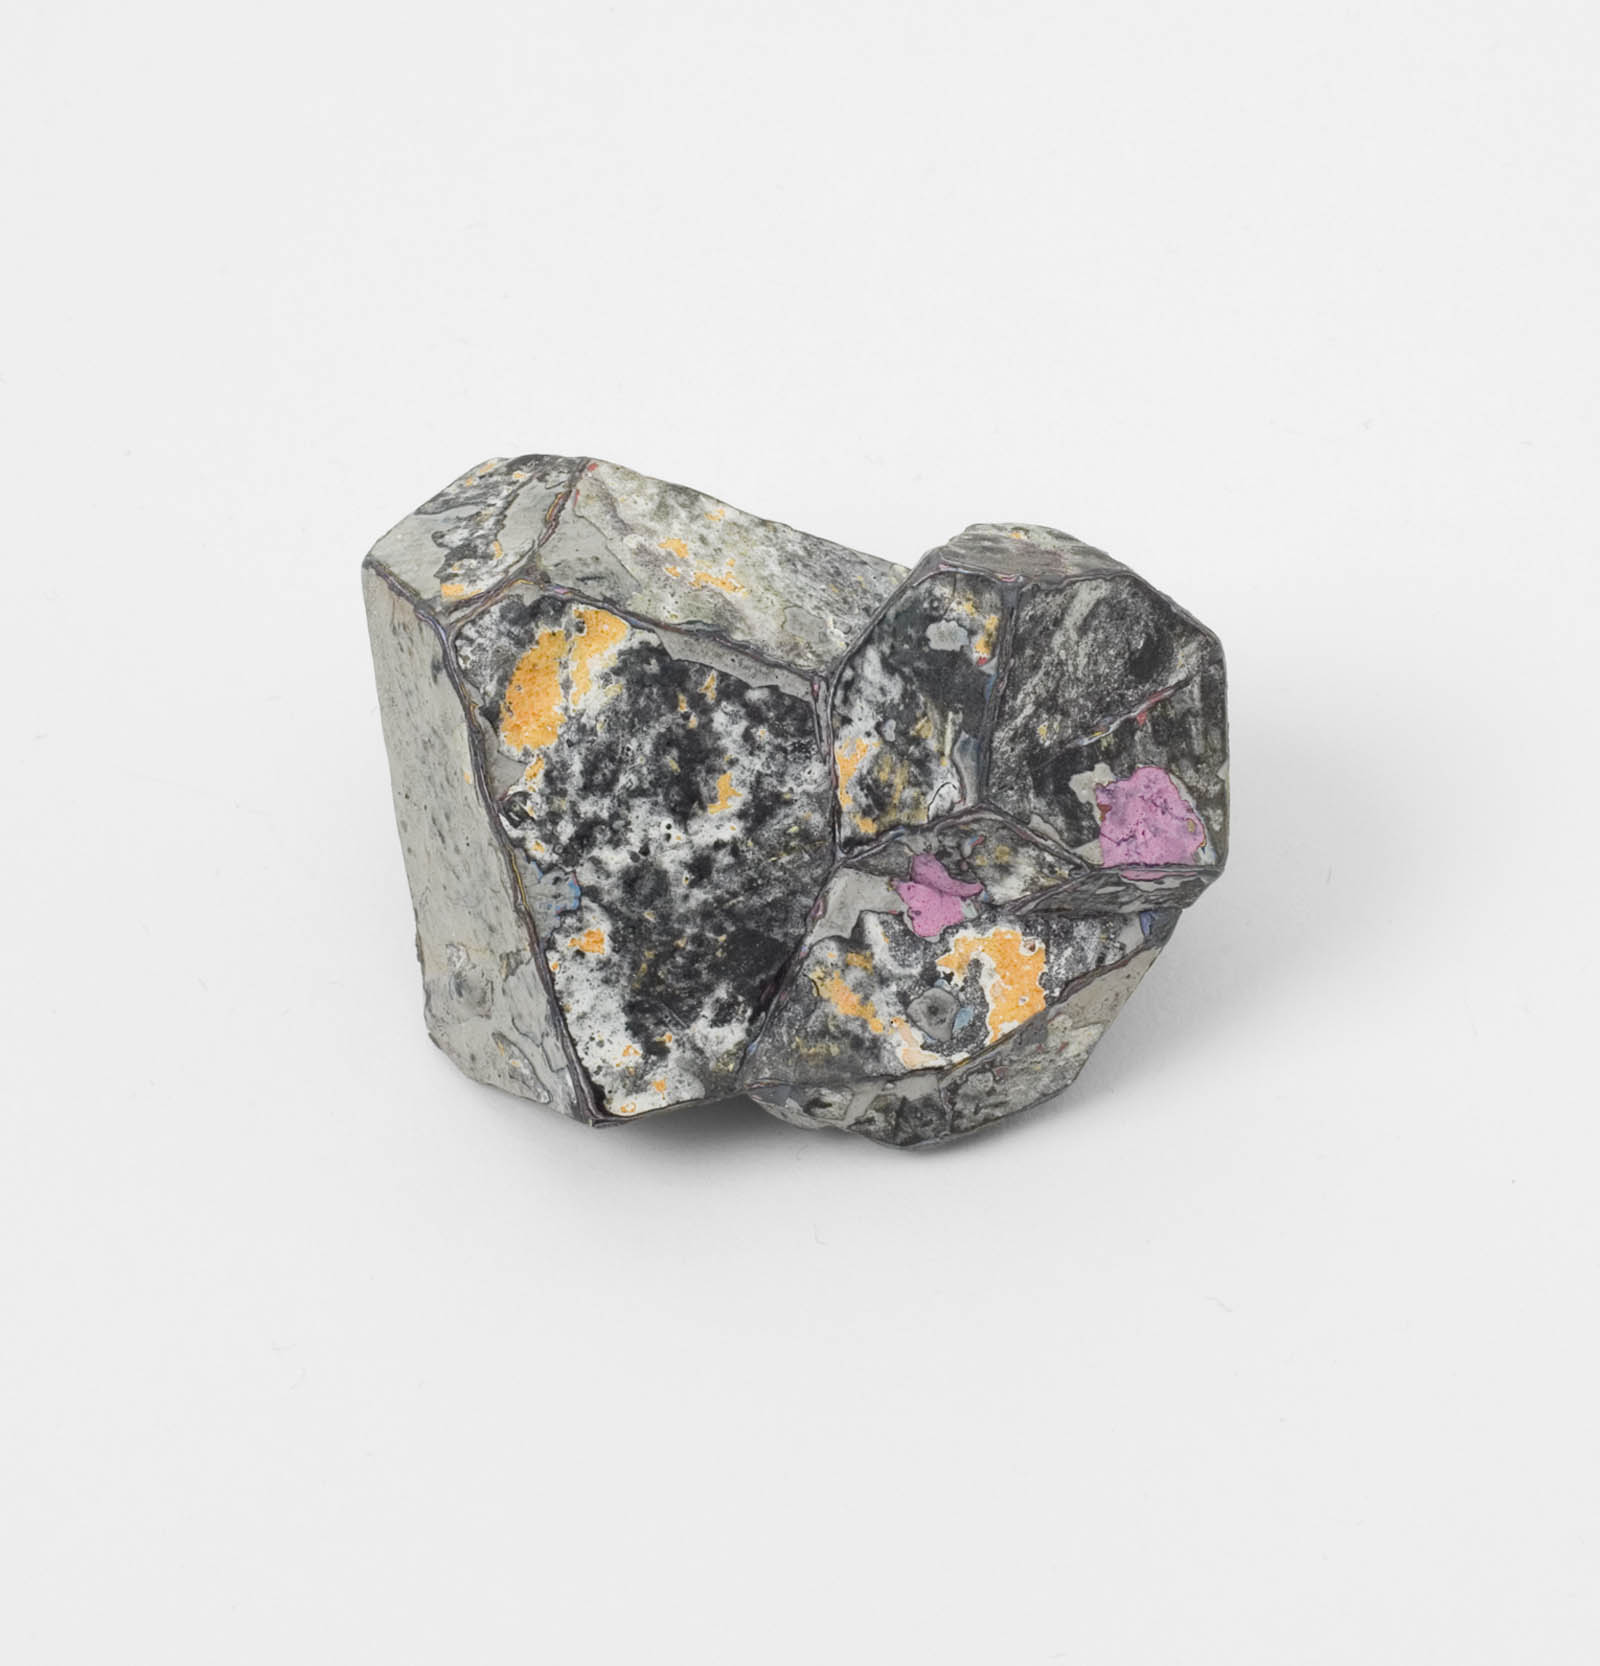 """Stained 4"" I Brooch, 2012 I Graffiti, silver, stainless steel I Photo: Mirei Takeuchi"